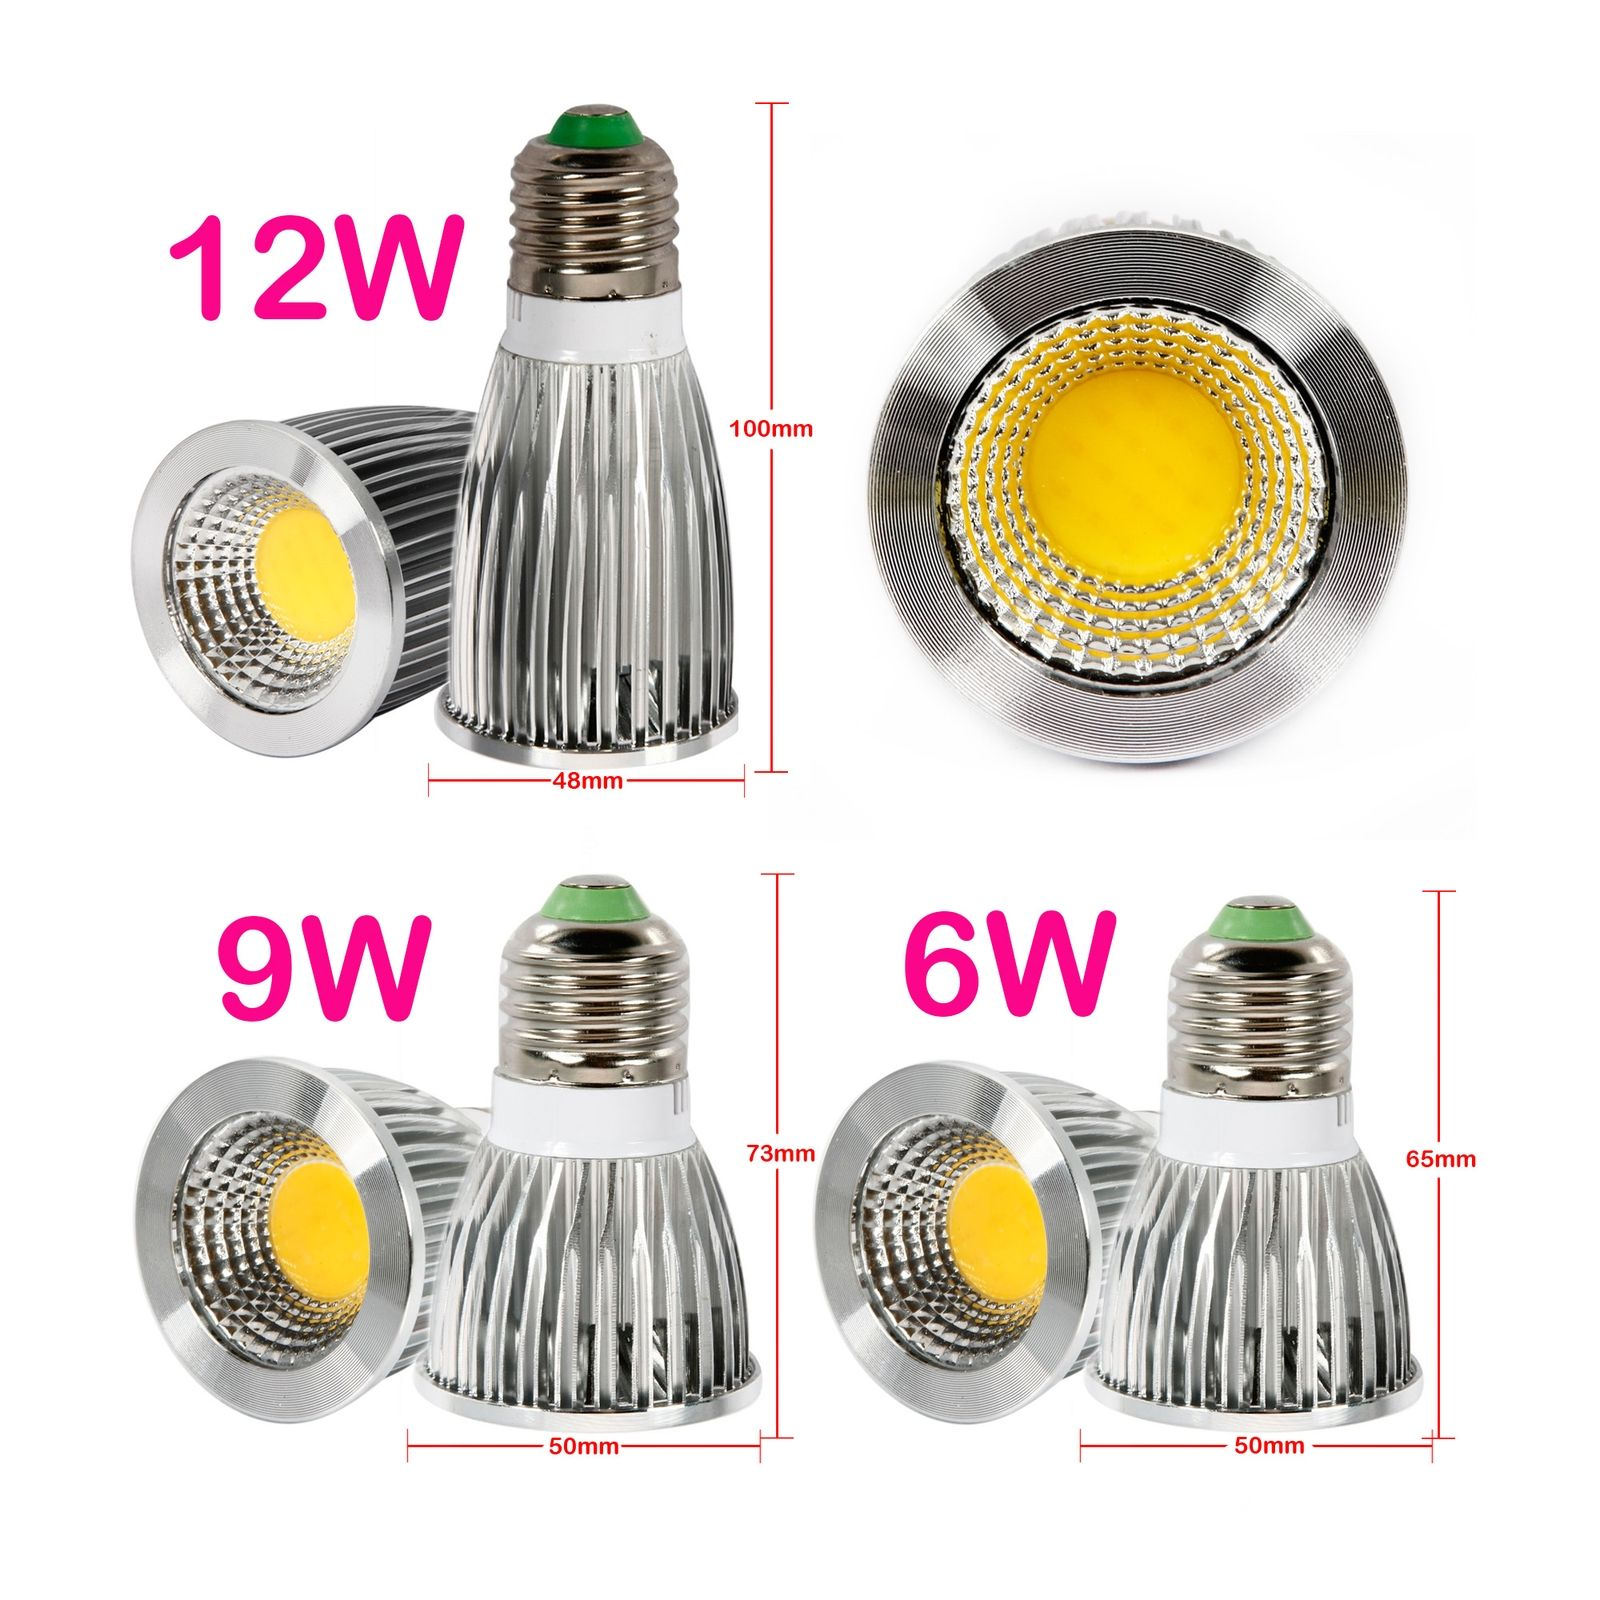 ultra bright 6w 9w 12w mr16 gu10 e27 dimmable led cob spot. Black Bedroom Furniture Sets. Home Design Ideas